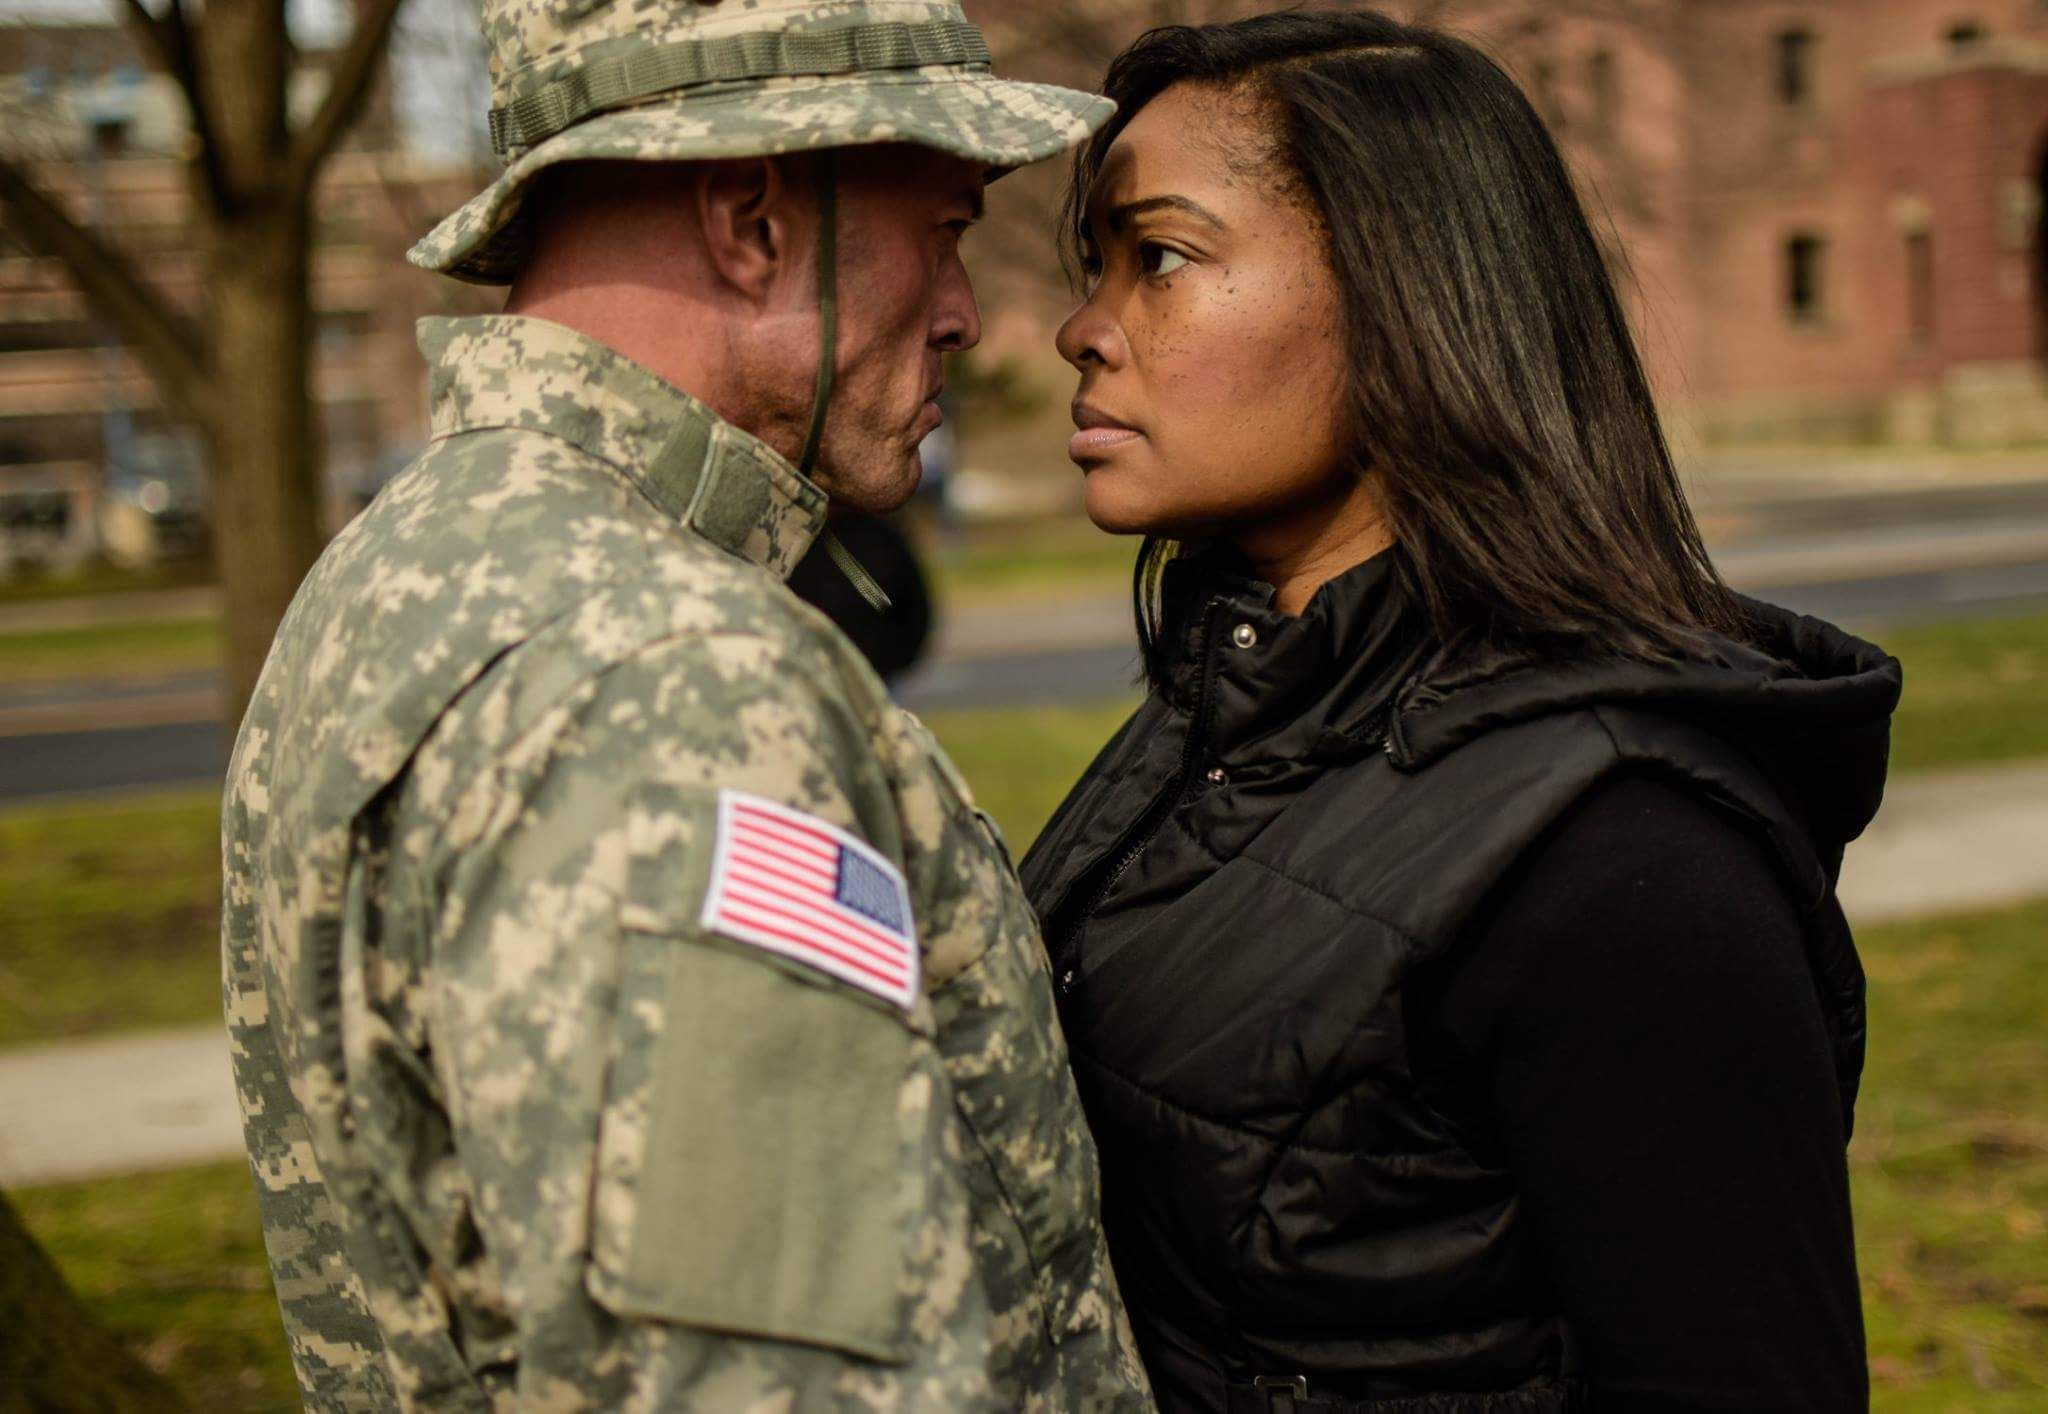 A Sense of Purpose Fighting For Our Lives - Actor John Quinlan as Nixon & Tamara Woods #JohnQuinlan1